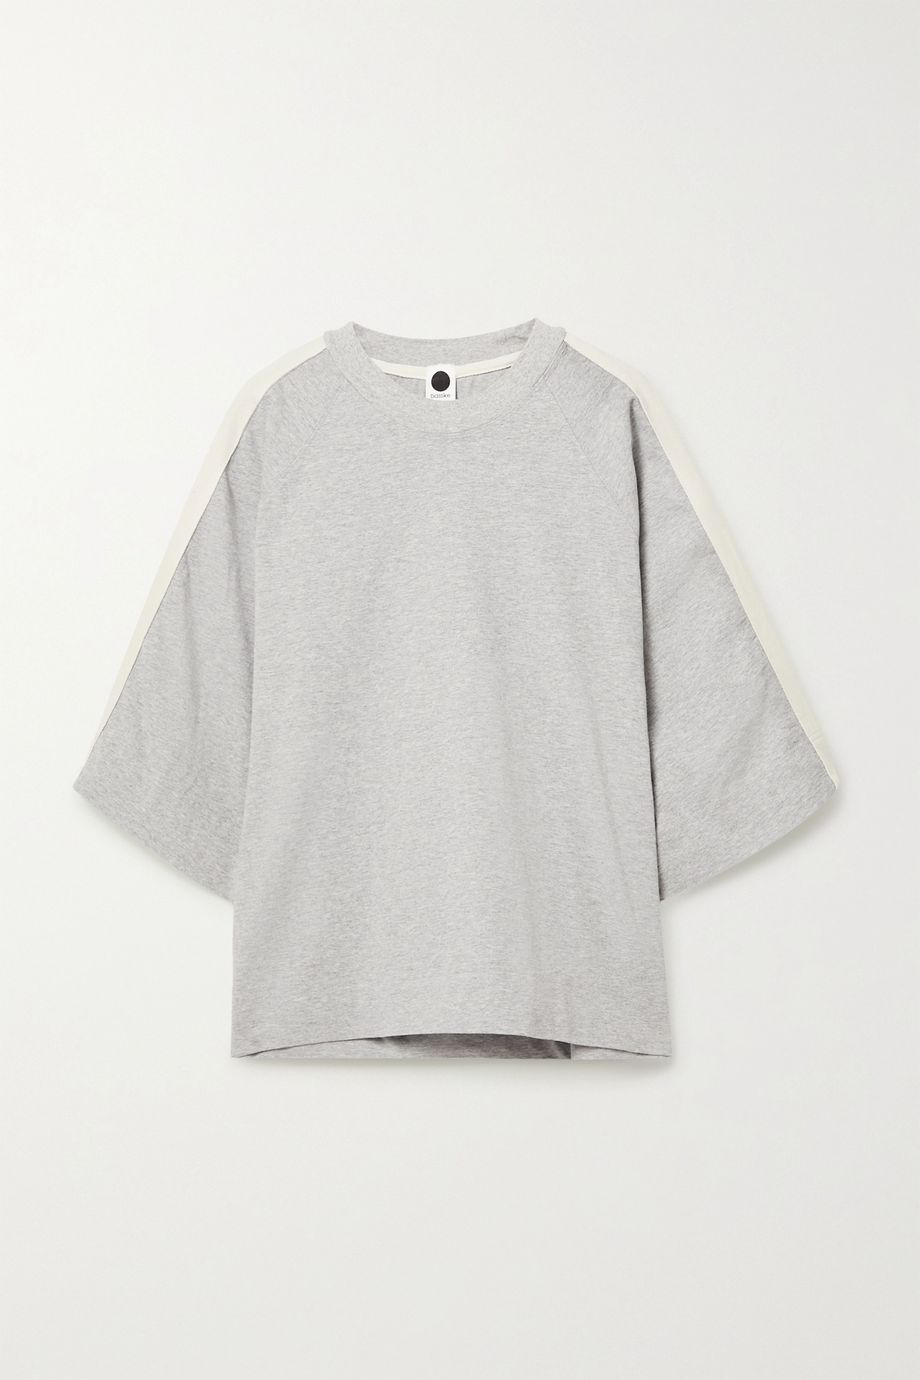 Bassike + NET SUSTAIN organic cotton-jersey top